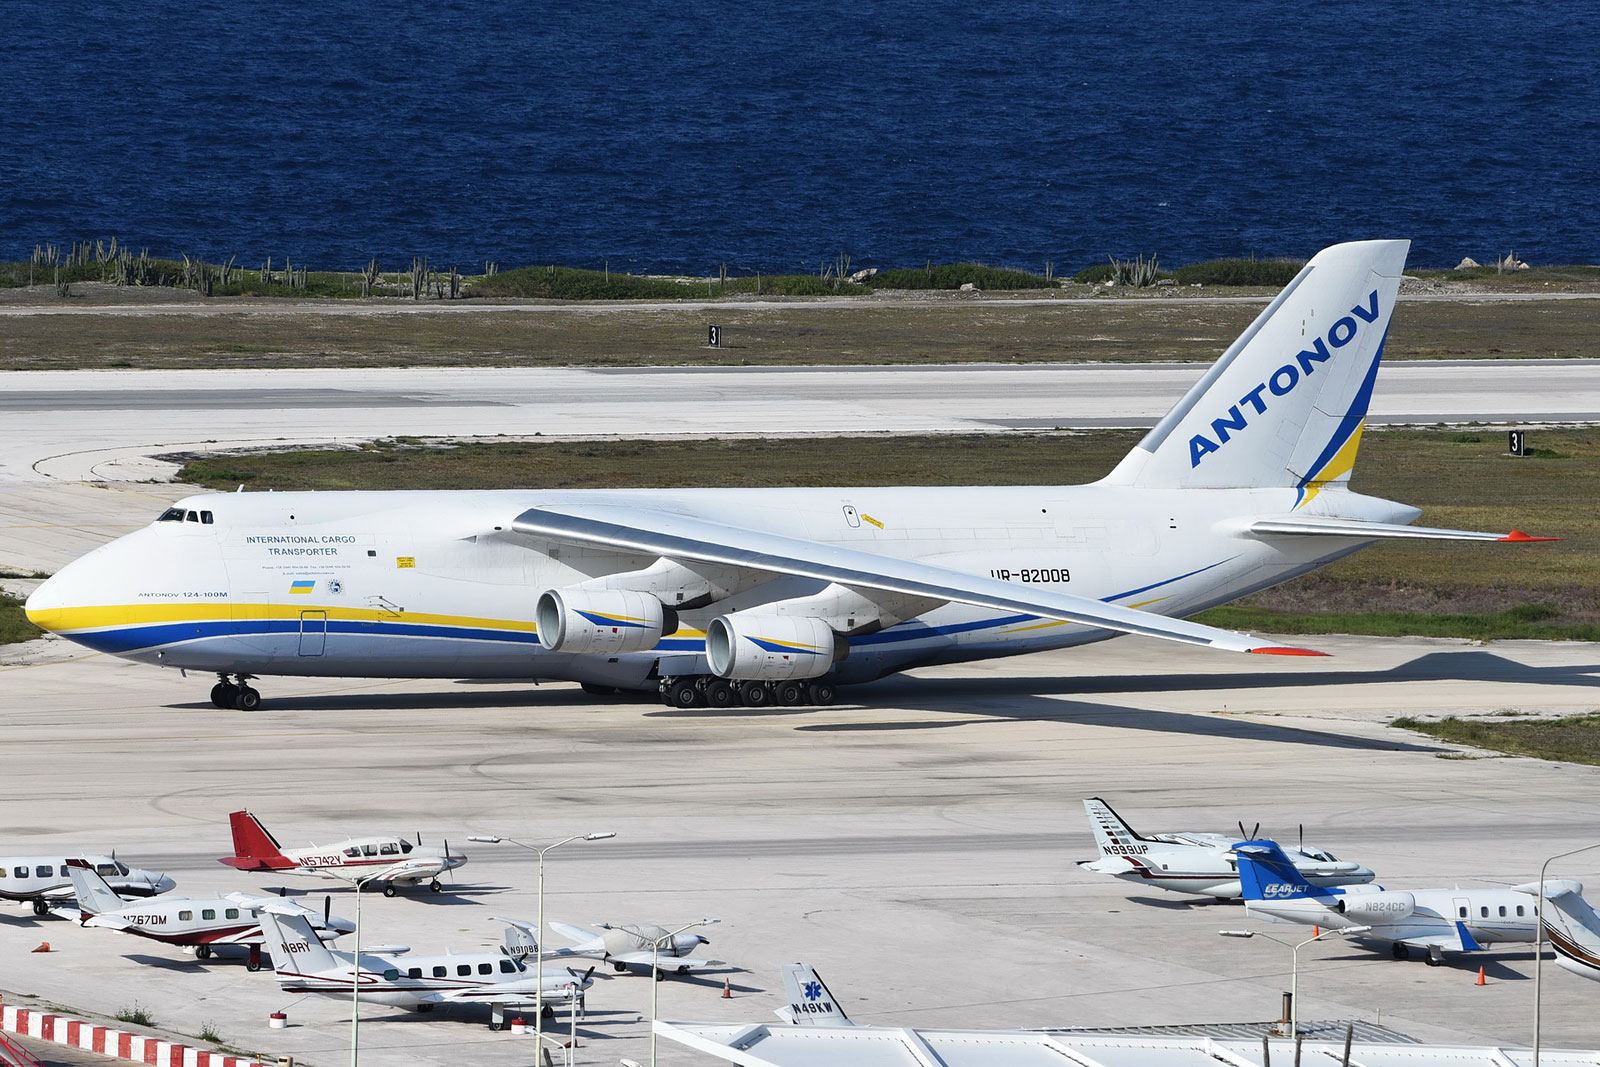 One of the largest transport aircraft in the world at Hato International Airport of Curacao transporting aid from the Netherlands